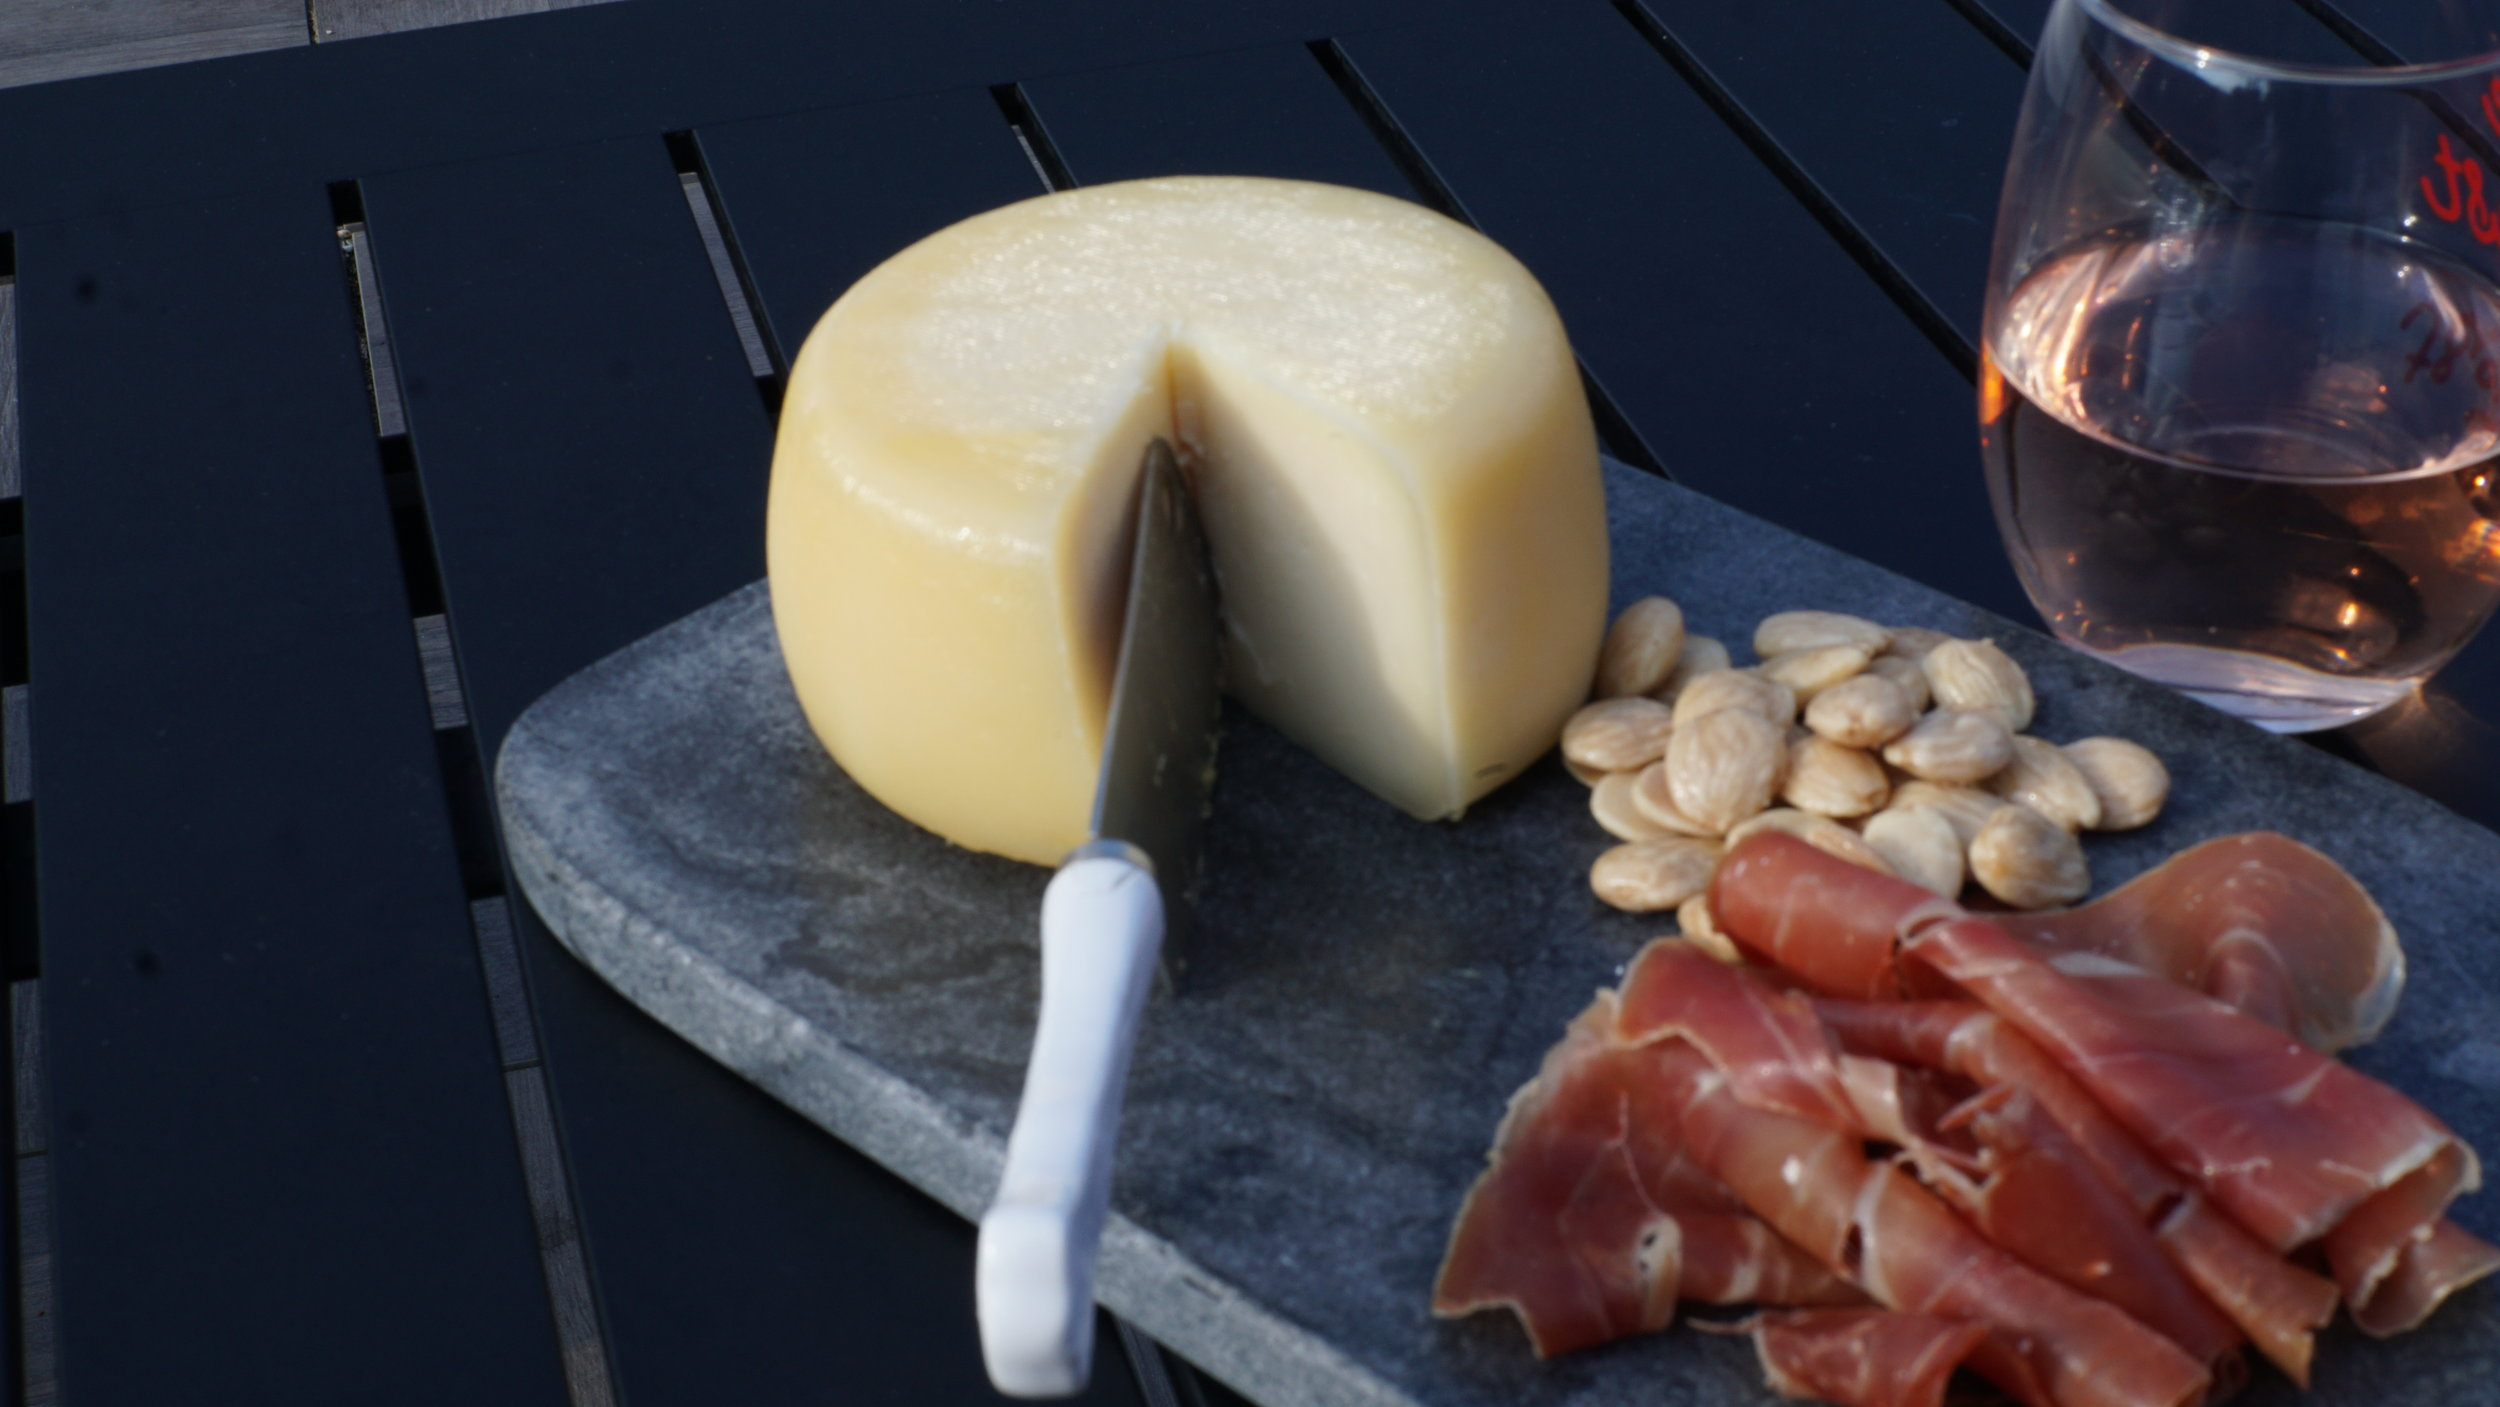 Meat, cheese and almonds we carry at the store. These would work great for our picnic on the Mall suggestion!